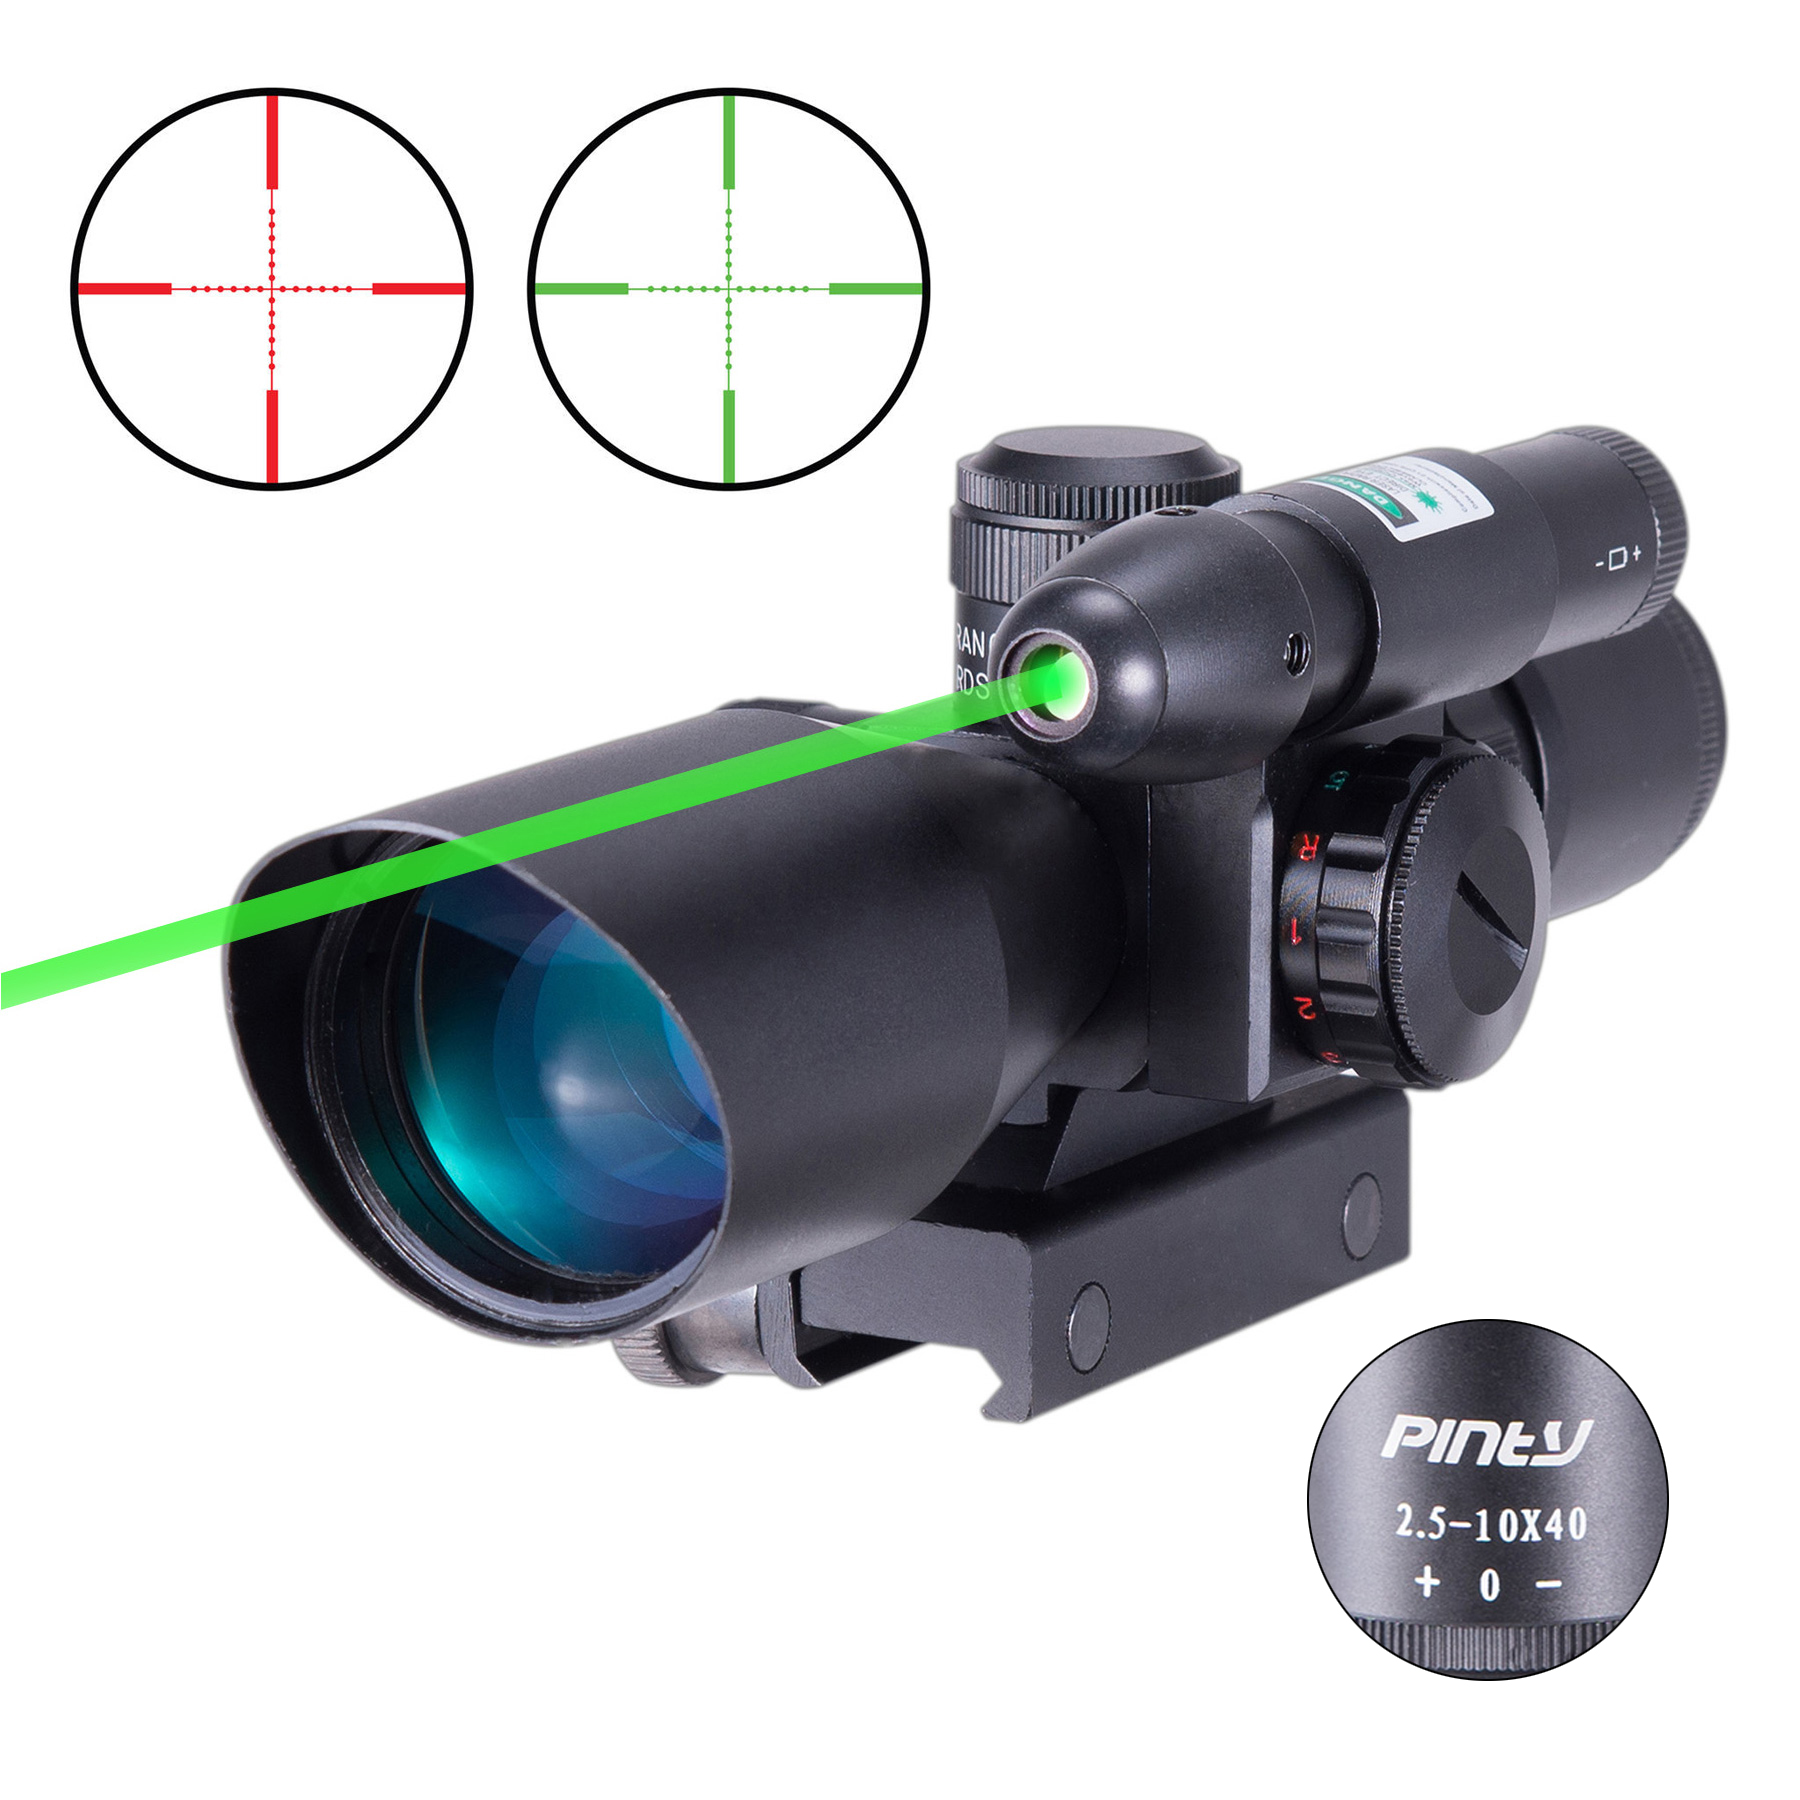 Pinty 2-in-1 Combo 2.5-10x40 AOEG Illumination Tactical Mil-dot Riflescope with Green Laser Red Dot sight and 20mm Mount... by